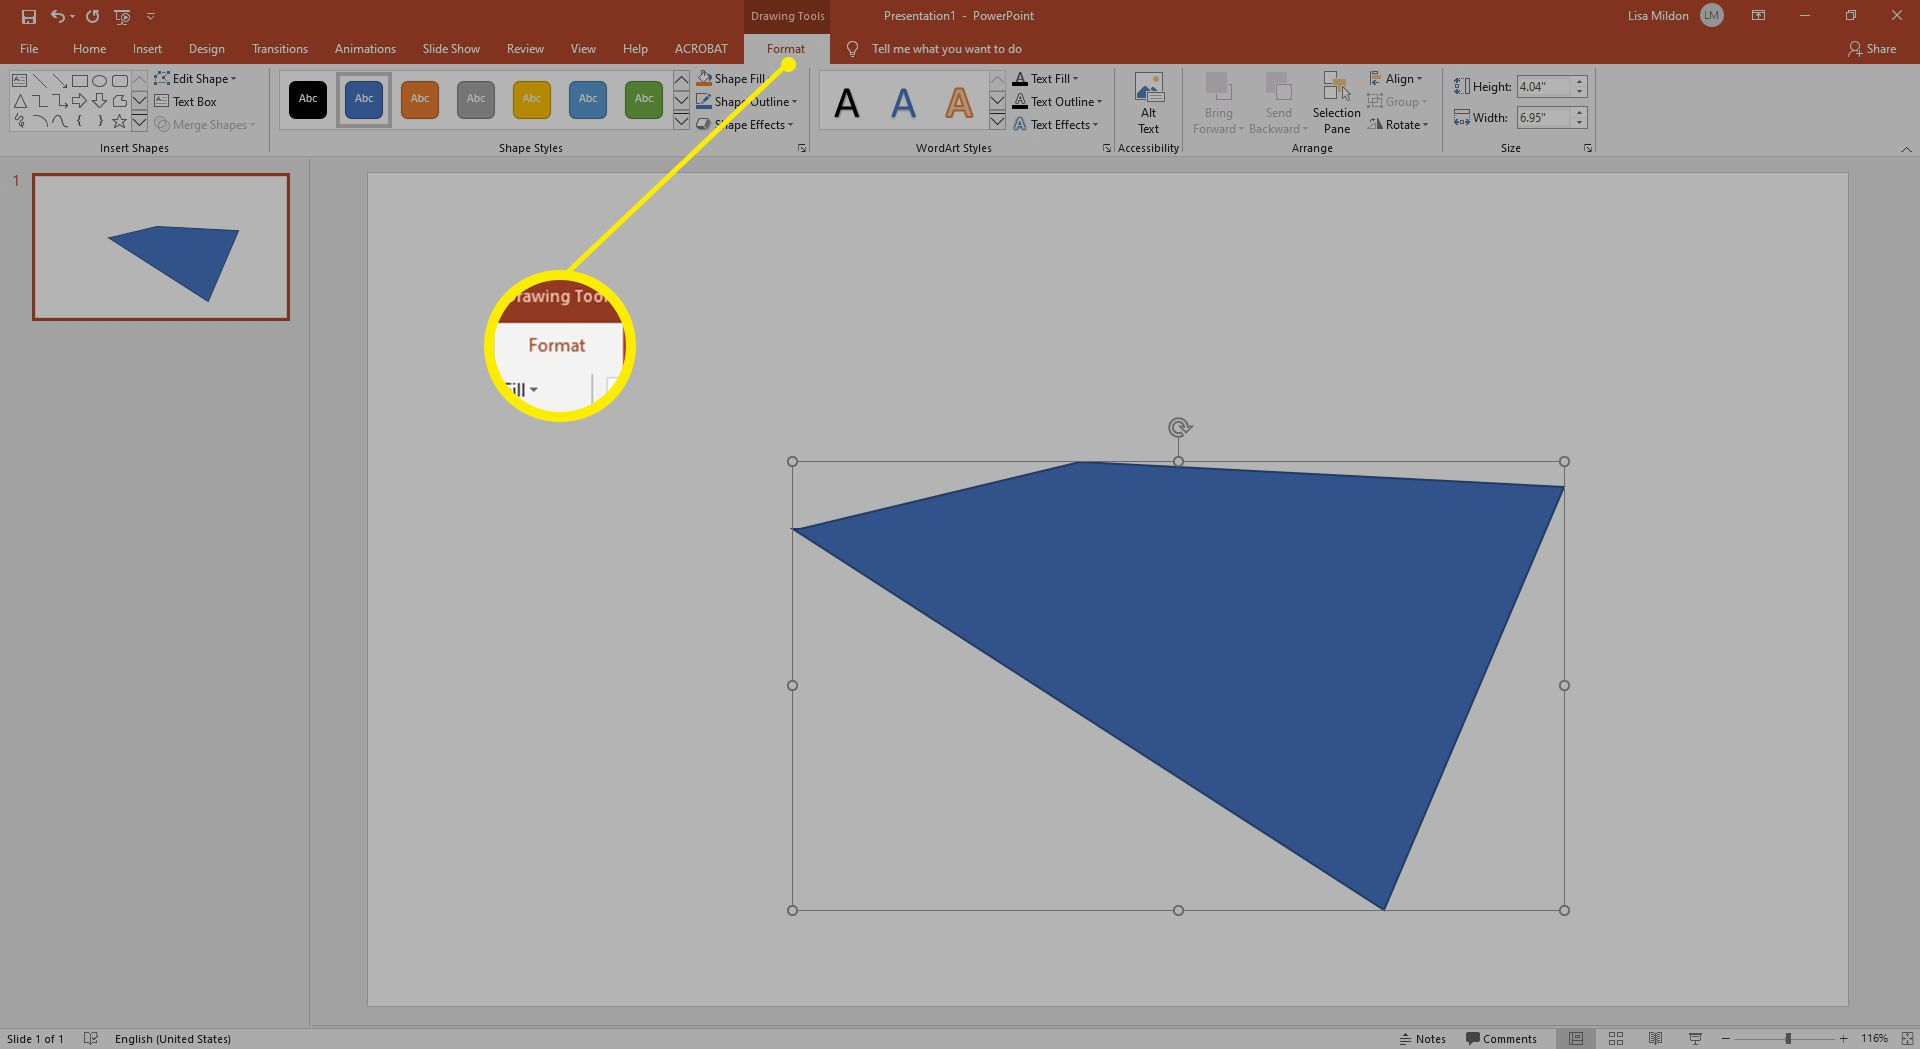 Finished custom shape using Freeform tool in Powerpoint